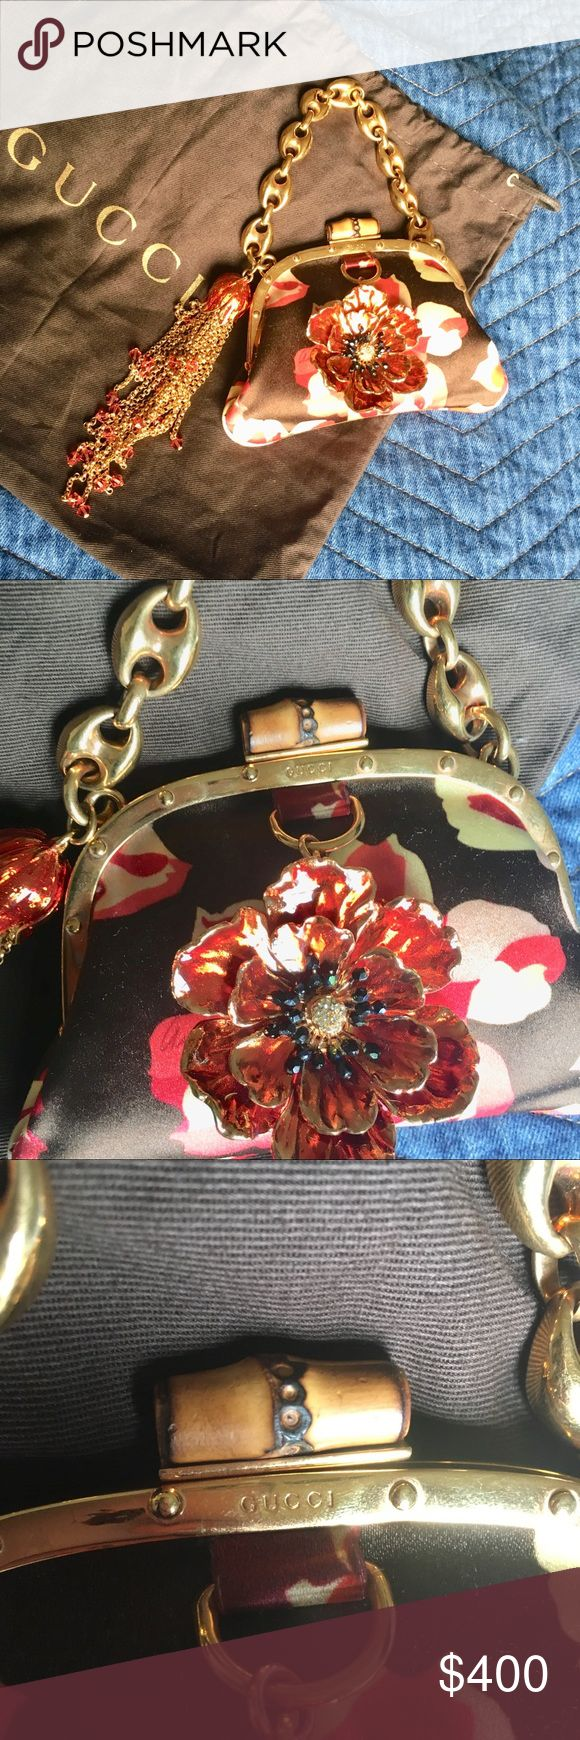 Gucci Jeweled Party Clutch Very Rare to find  💎 Jeweled 💎 100% Authentic Mini Party Clutch, it has golden tone hard ware with one big jeweled flower Charm & gorgeous Tassel Charm comes with Gucci heavy chain as handle, it has Gucci Engraved on its hard ware, the snap comes as bambo!!  it is just Piece of Jewel 💎 you will love as it has been loved, has small snug on back sides & hardware has some unnoticeable scratches. Gucci Bags Mini Bags